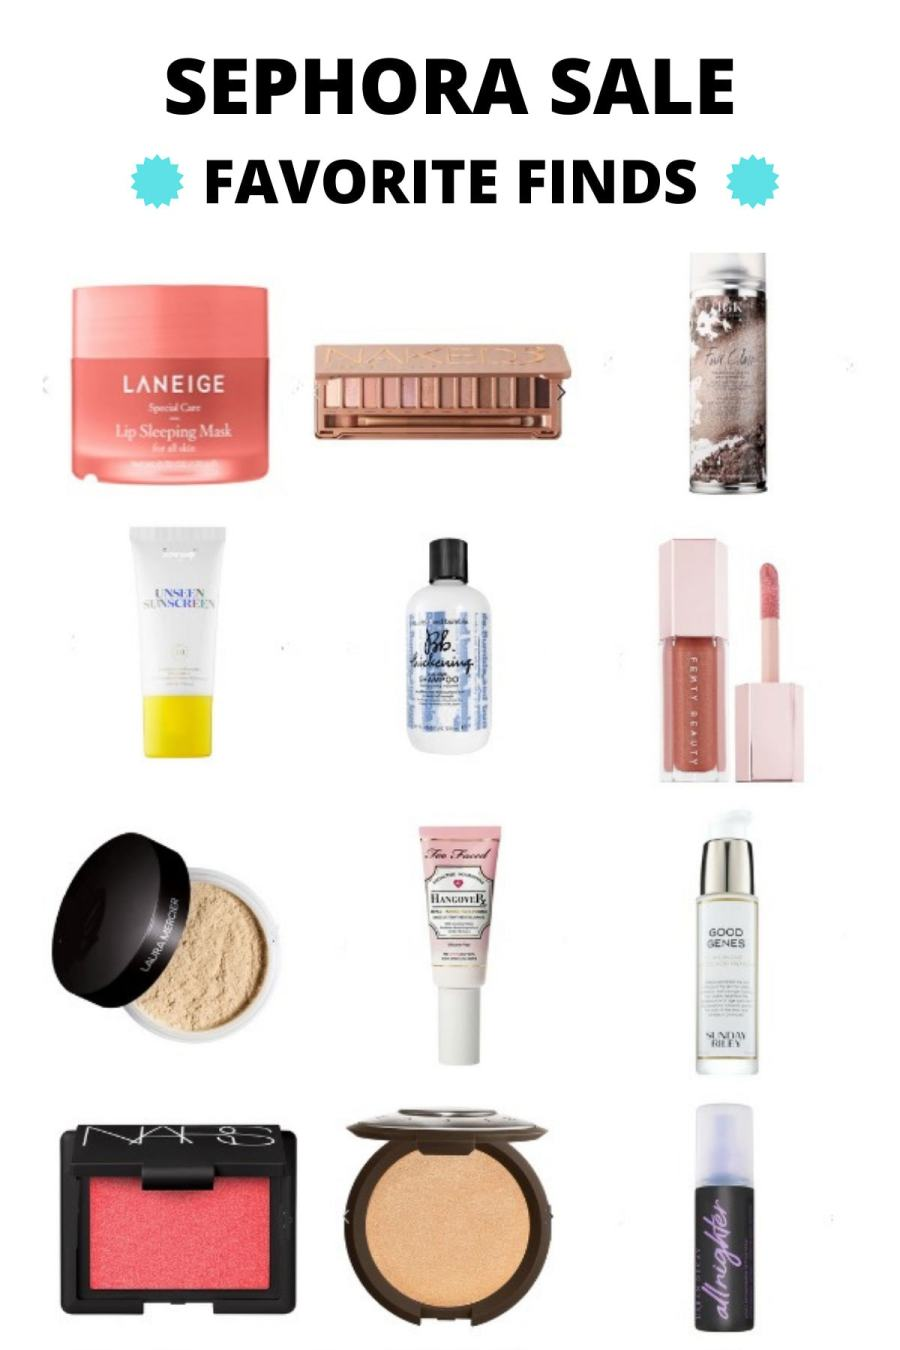 A collage of items from Sephora